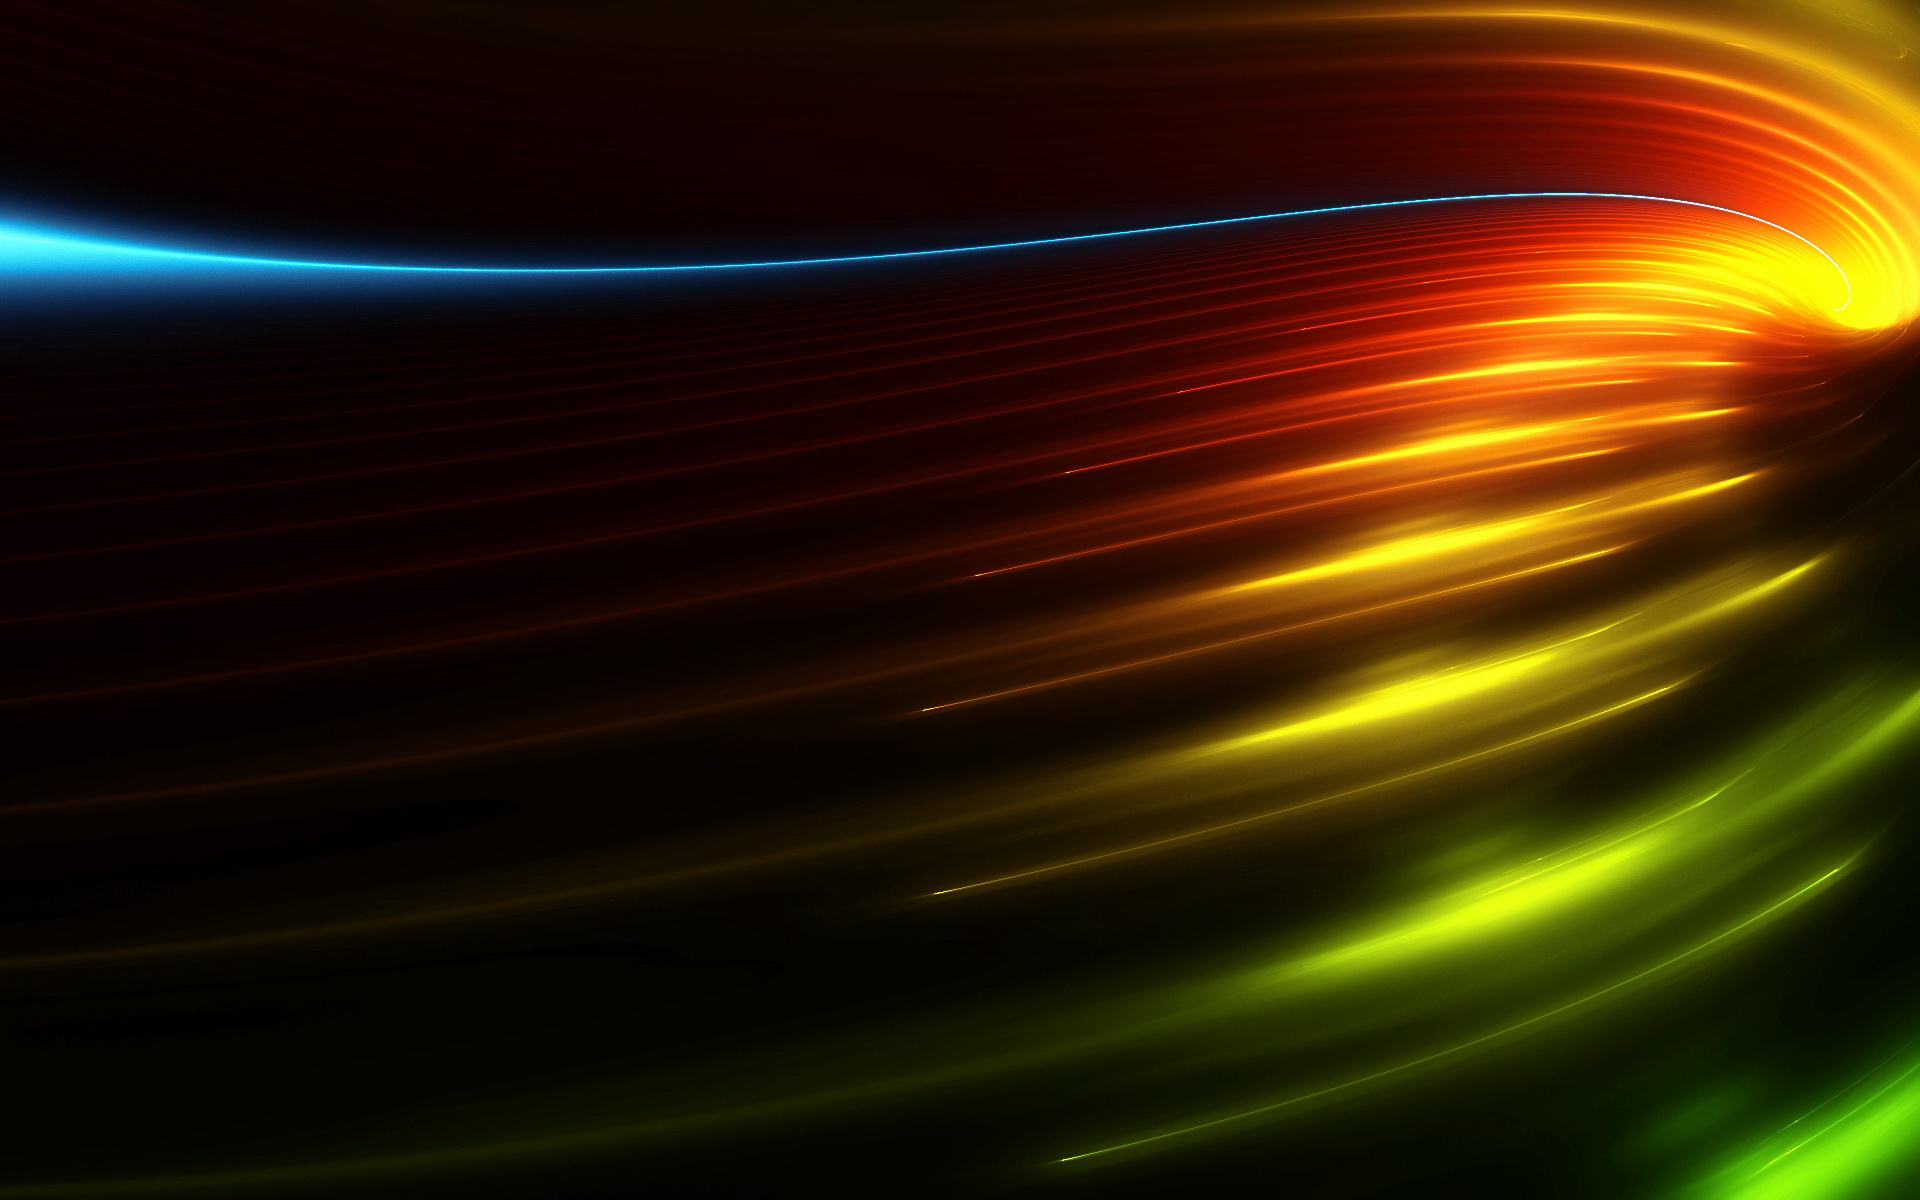 Dark Colorful Abstract wallpaper